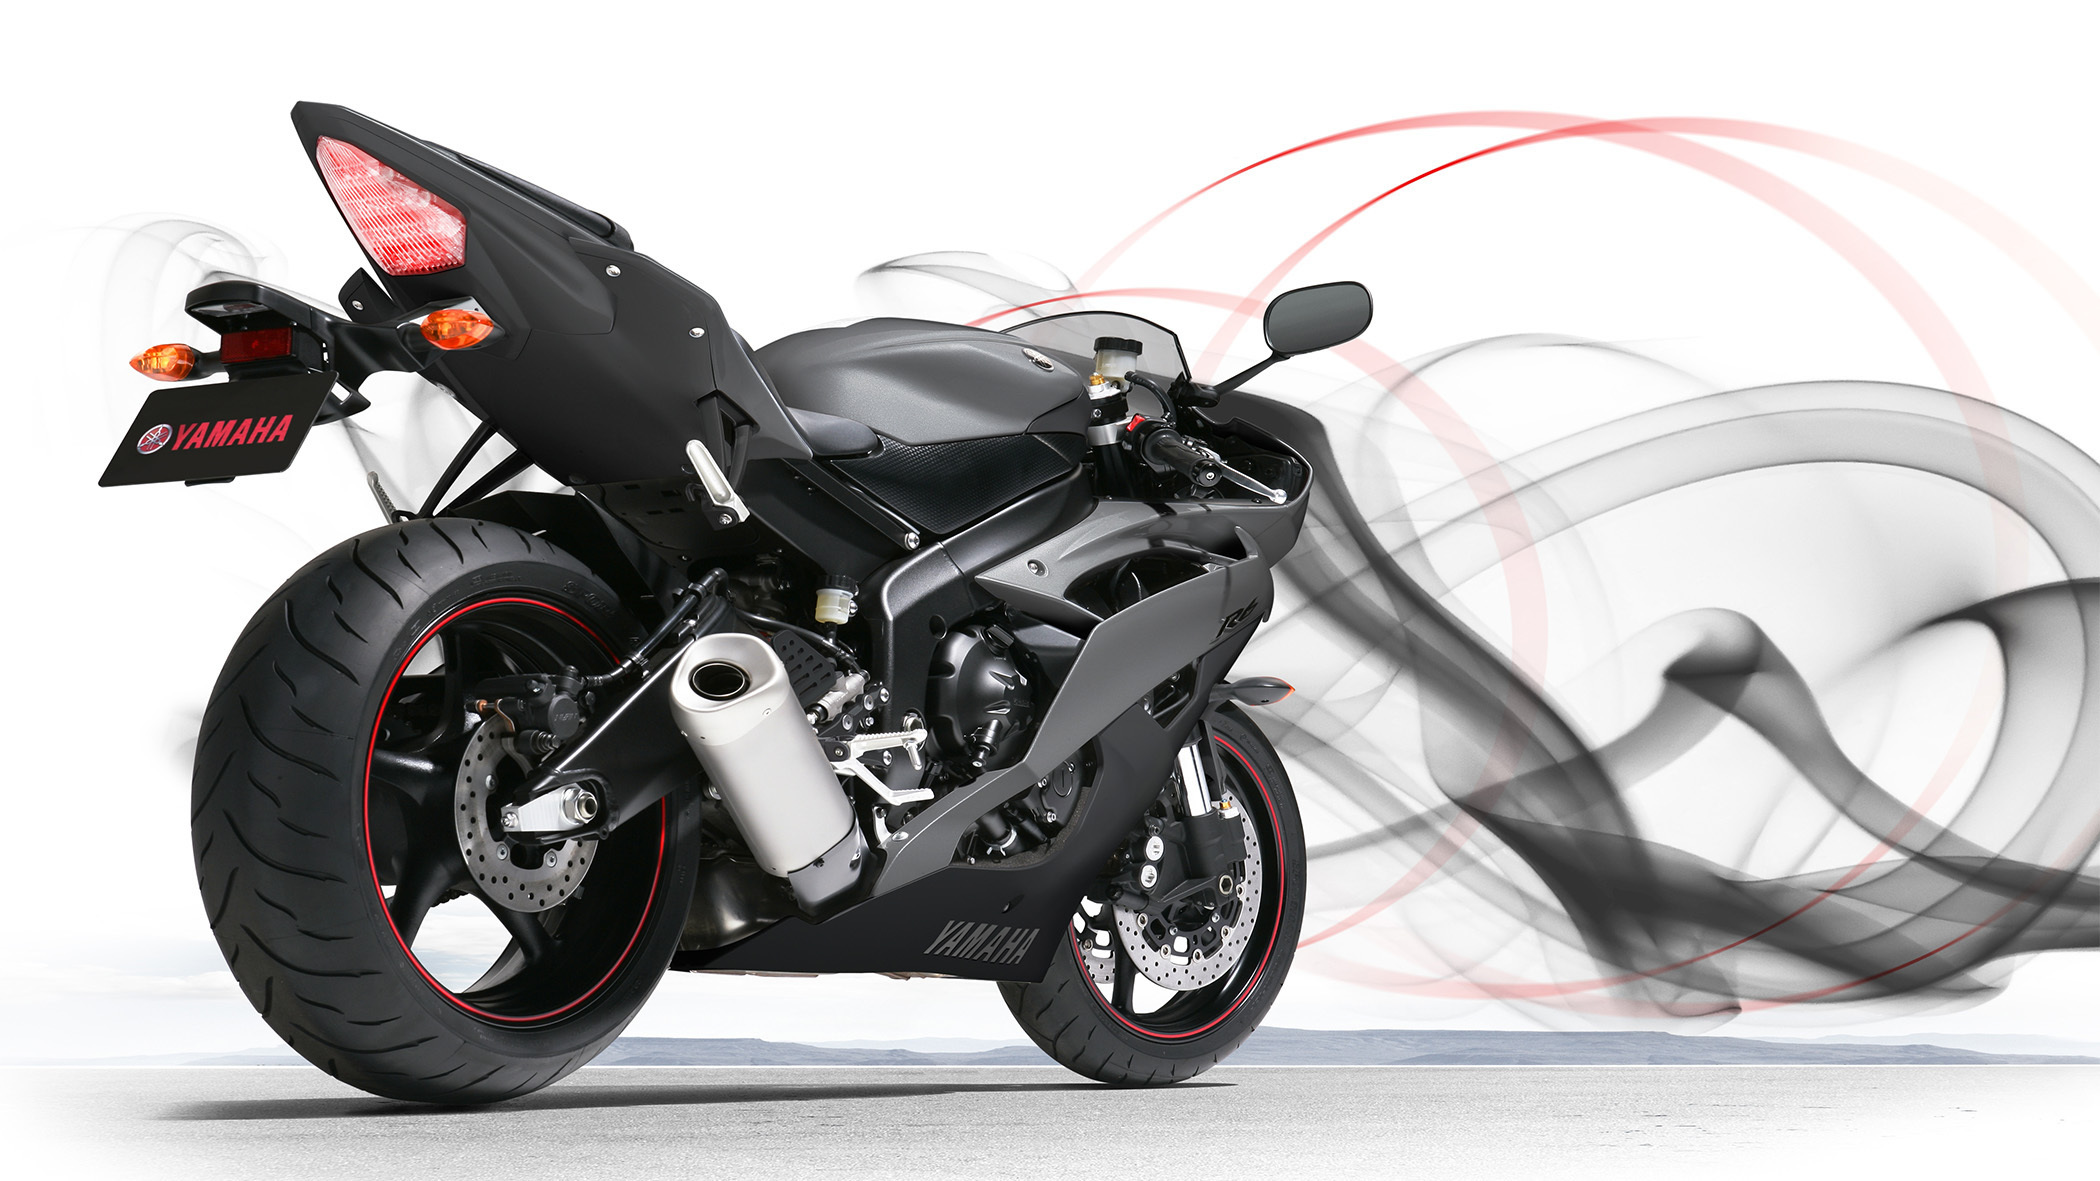 Hd wallpaper yamaha - Yamaha Yzf R6 Hd Wallpapers Backgrounds Wallpaper Abyss